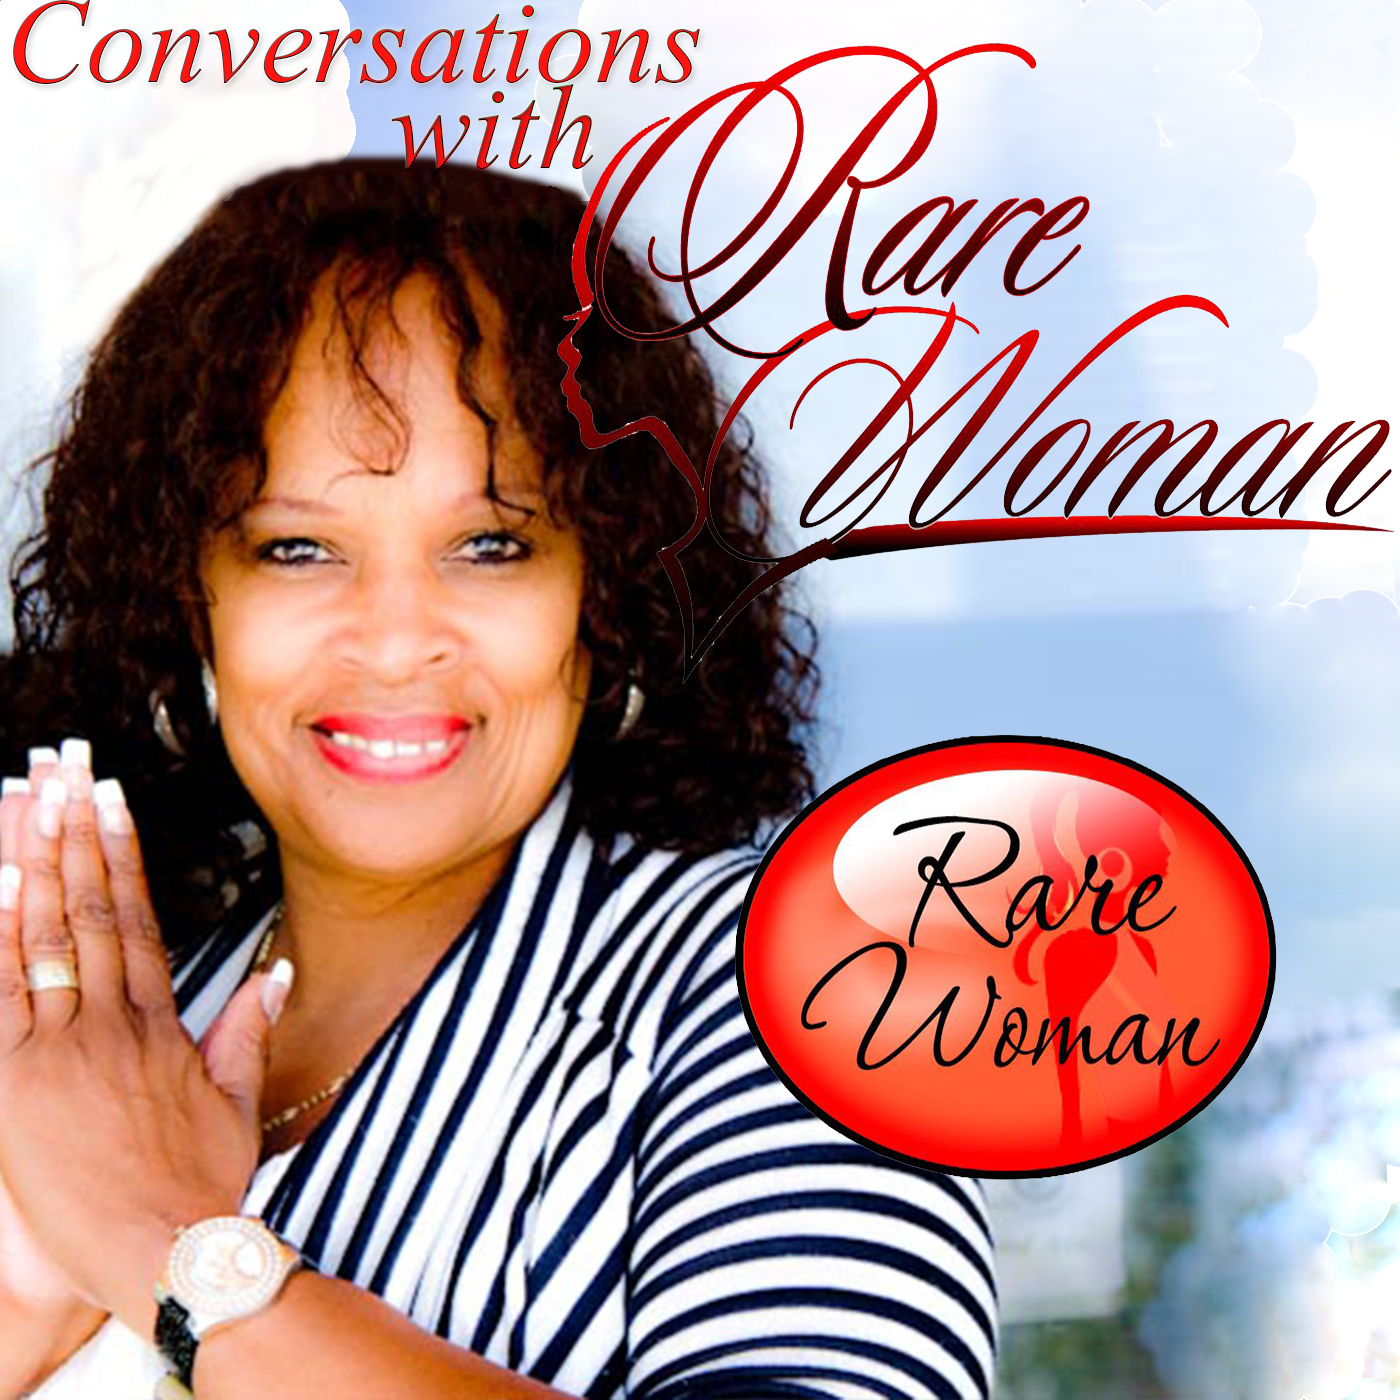 <![CDATA[CONVERSATIONS with RARE WOMAN]]>